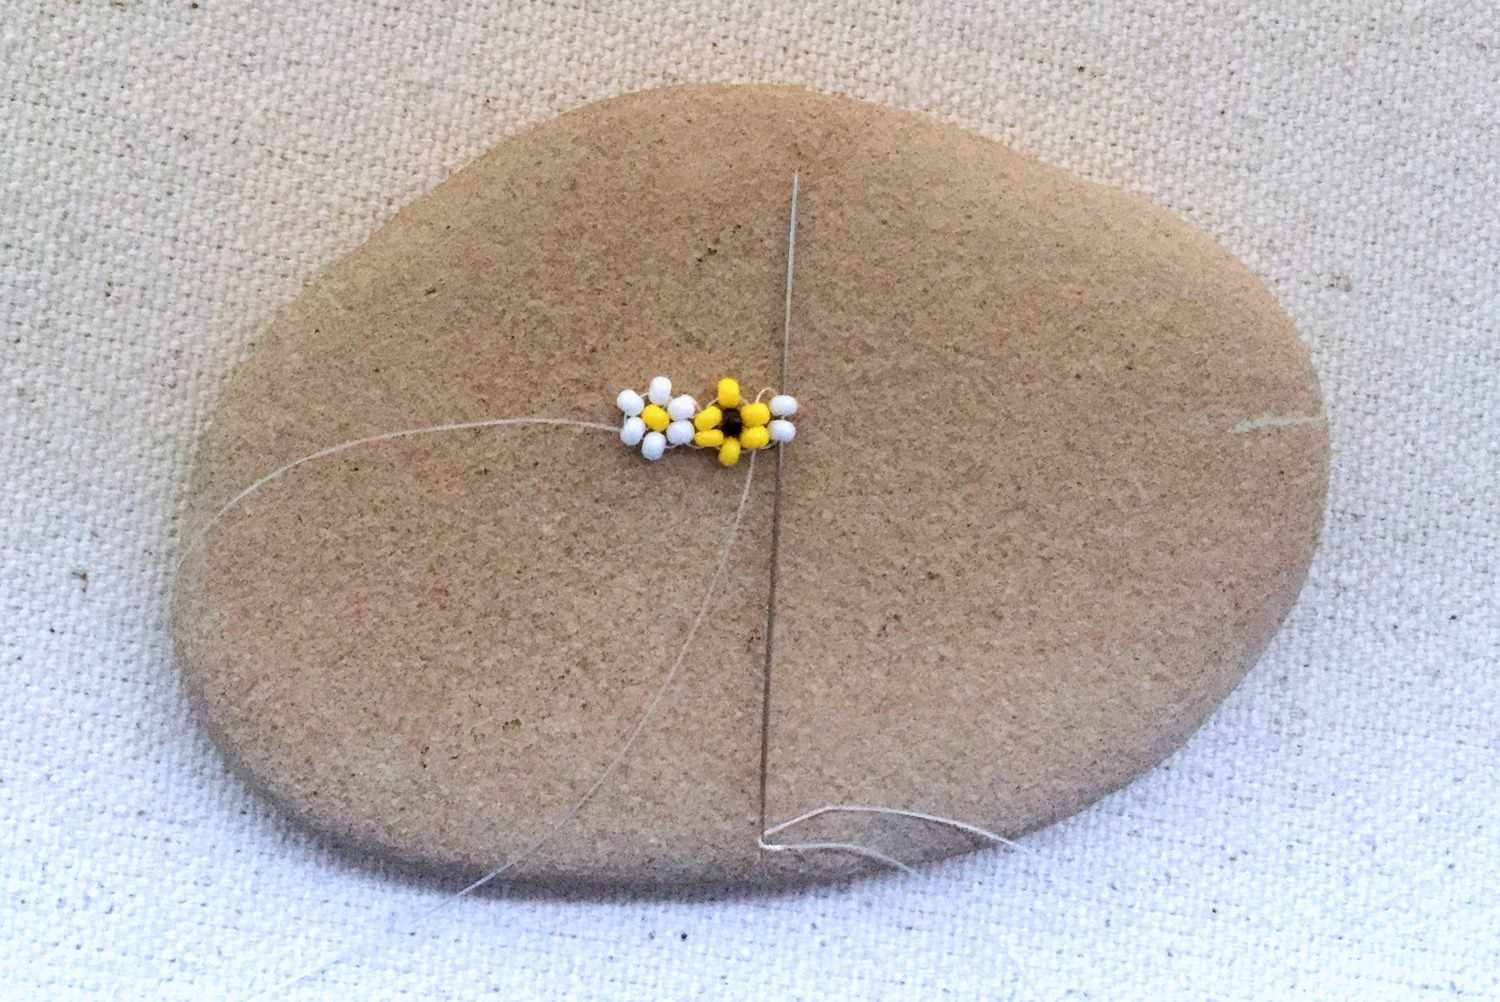 Making the second flower of a daisy chain